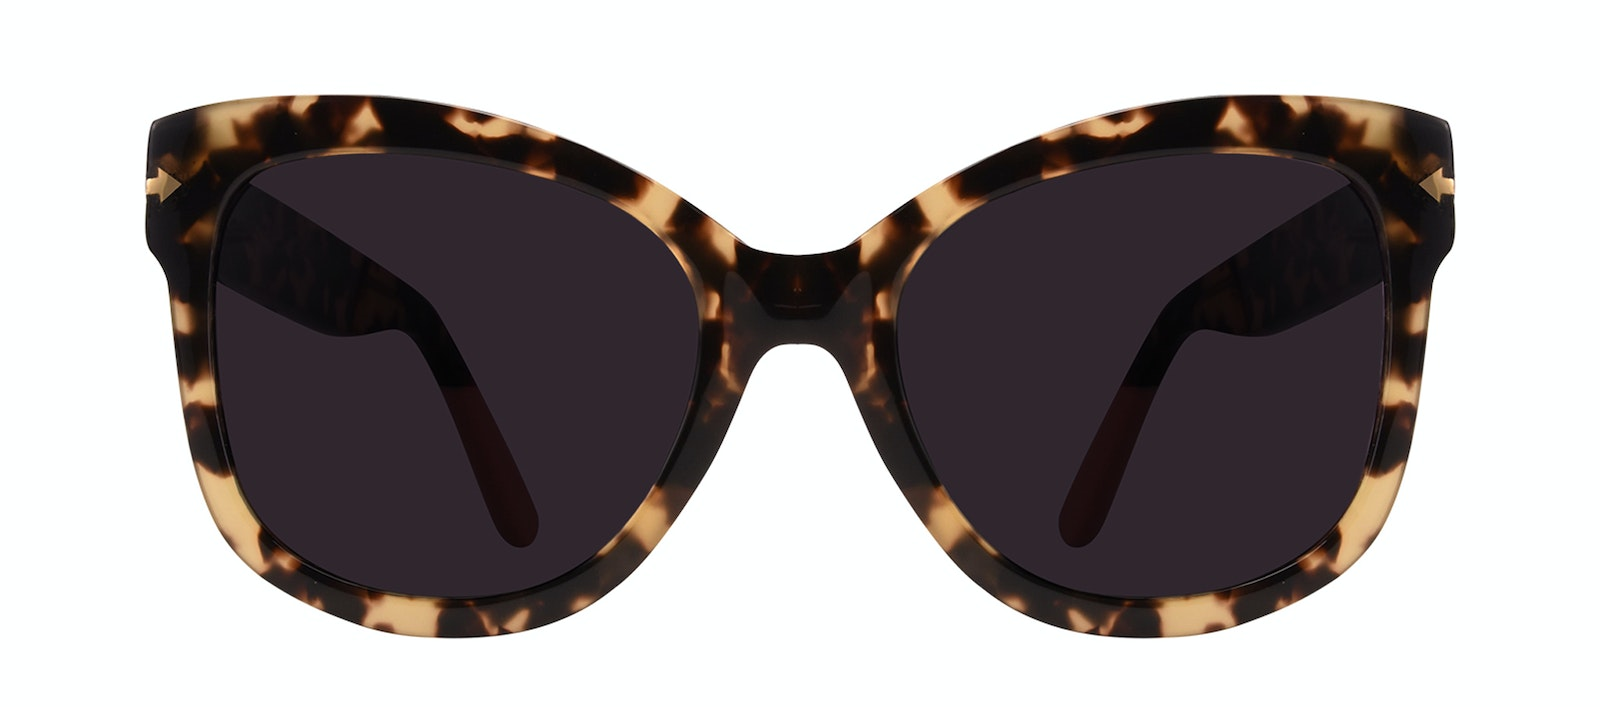 Affordable Fashion Glasses Square Sunglasses Women Marlo Espresso Front